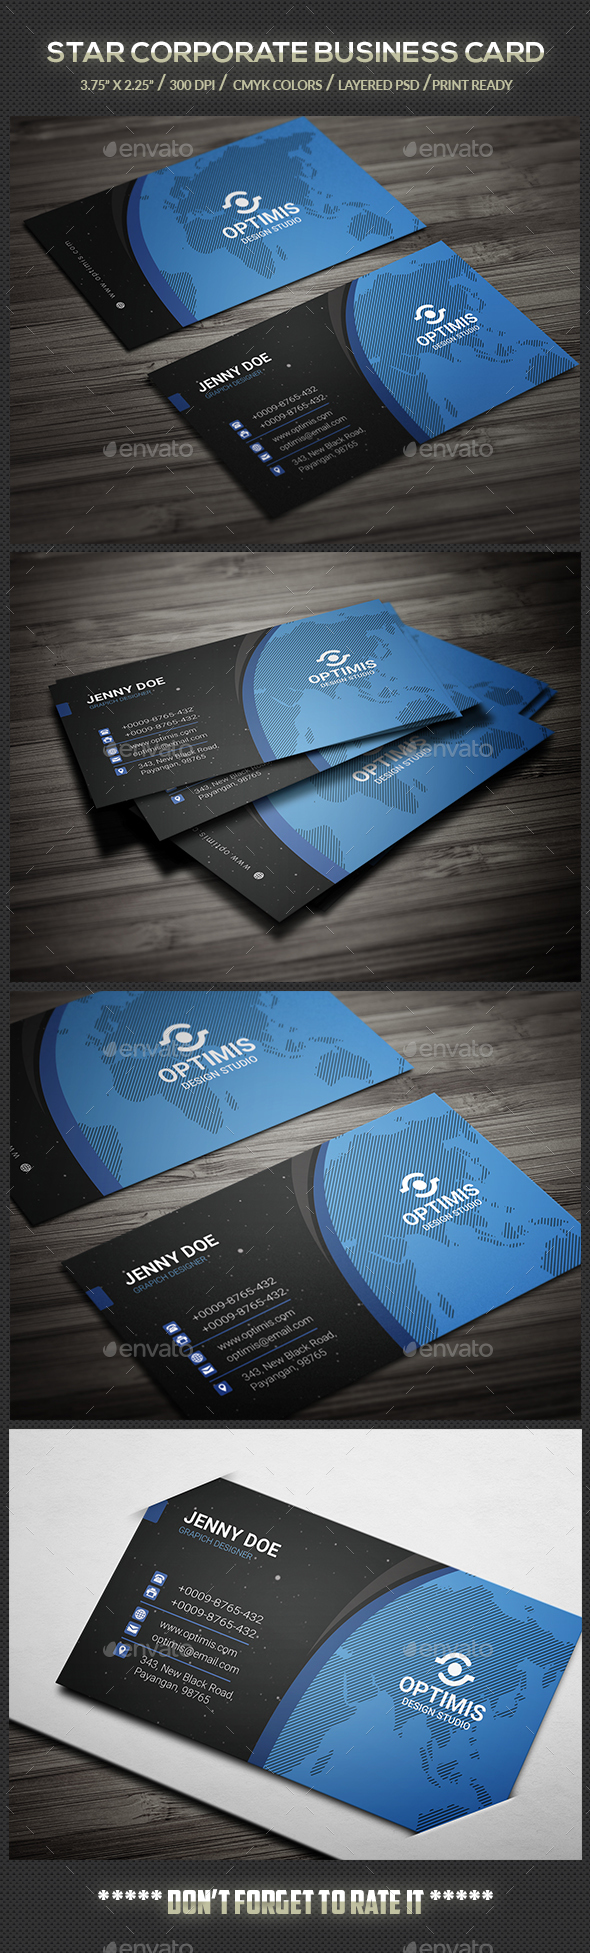 Star corporate business card corporate business business cards star corporate business card template psd design download httpgraphicriveritemstar corporate business card 13872122refksioks reheart Choice Image